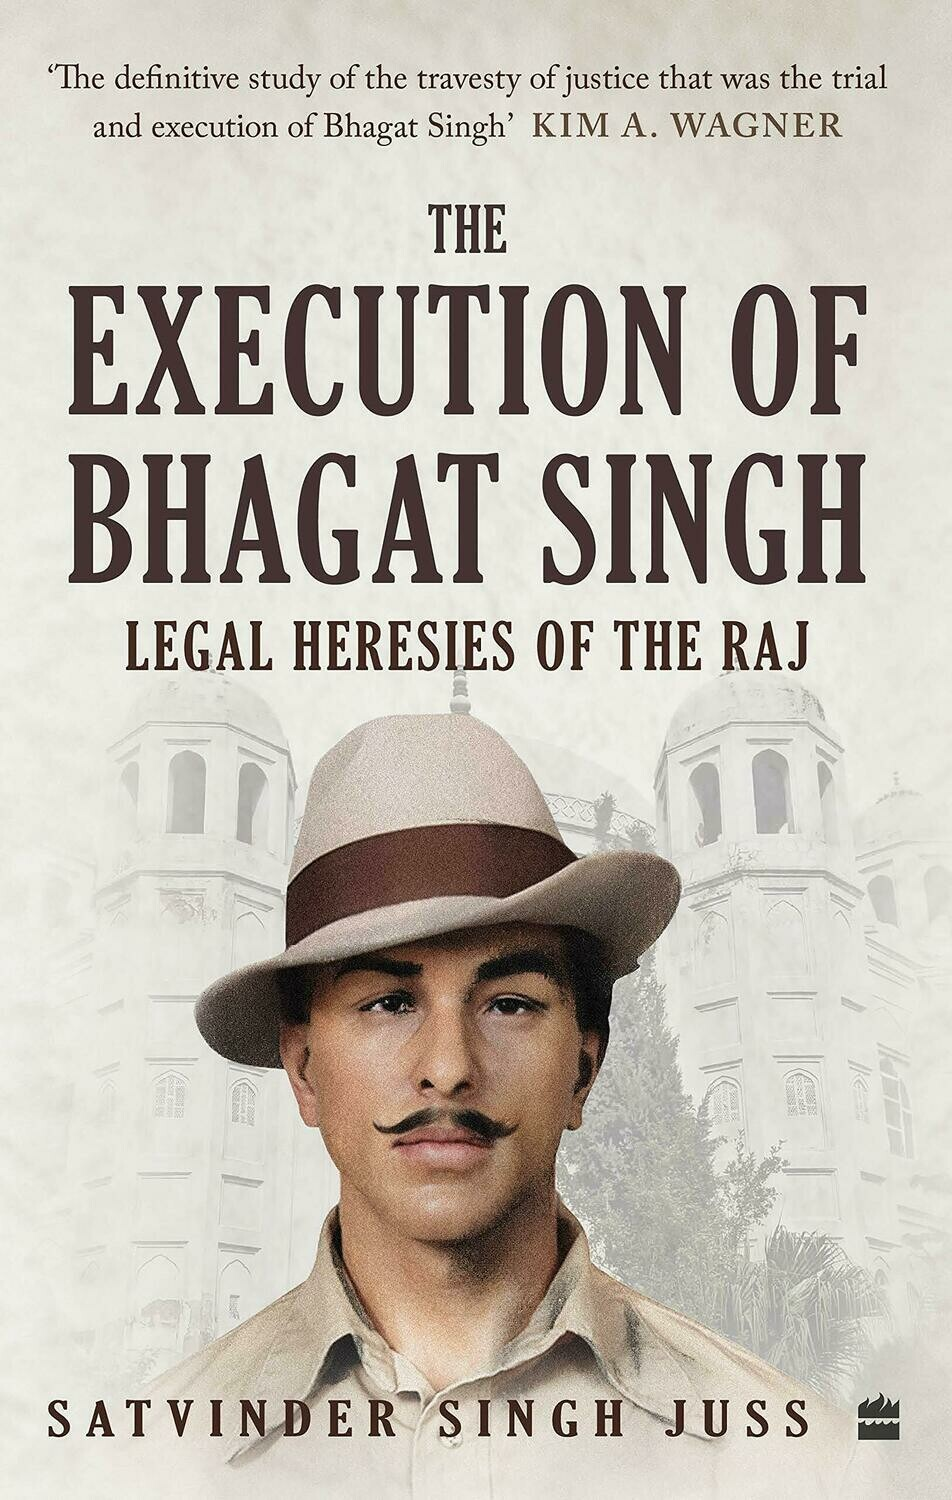 The Execution of Bhagat Singh: Legal Heresies of the Raj